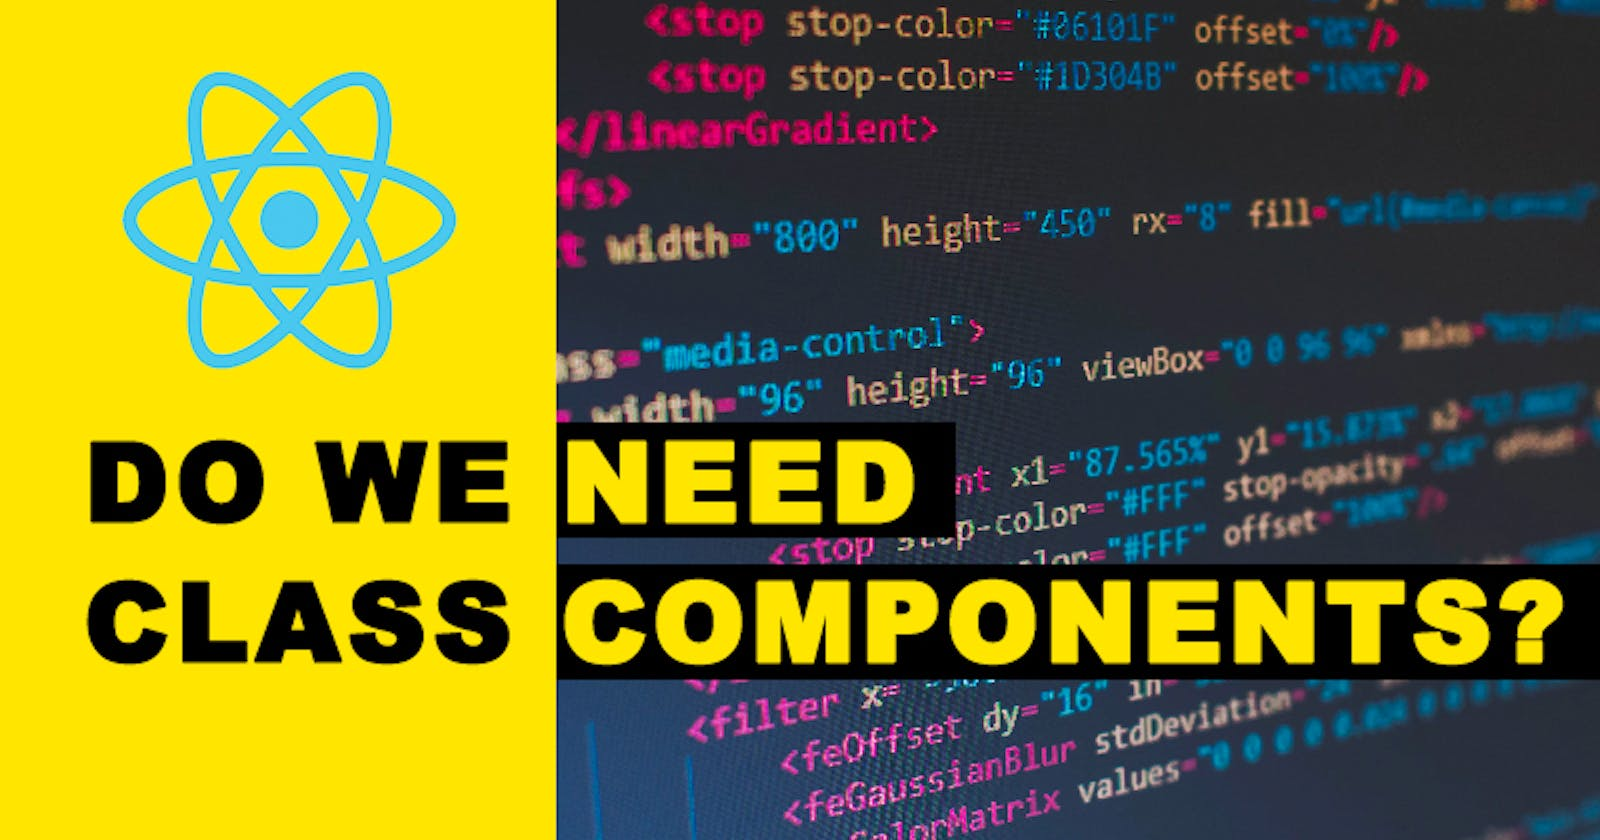 Do we really need class components anymore?